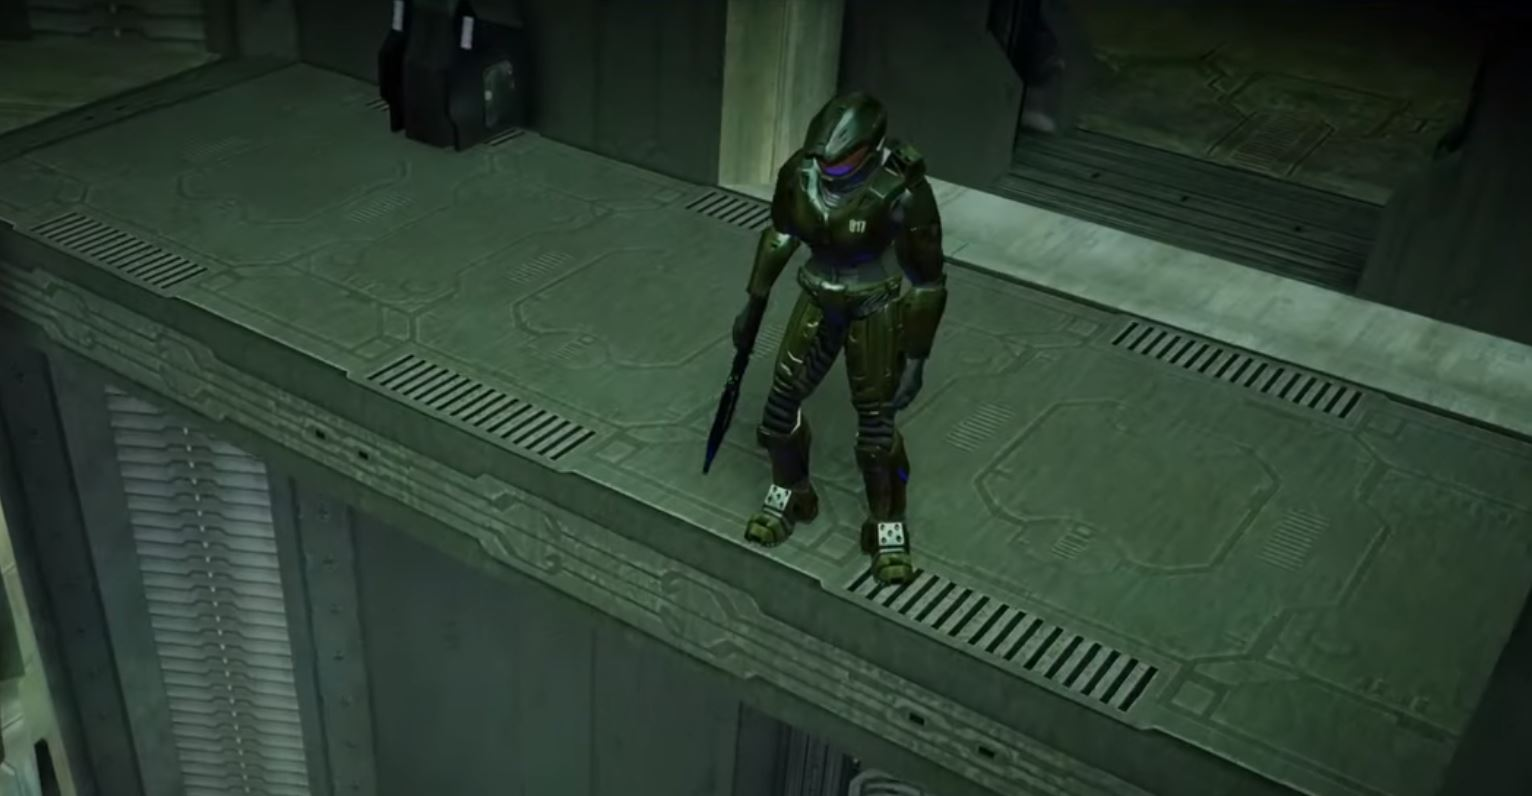 This Halo mod completely overhauls the original with new levels, weapons, and graphics